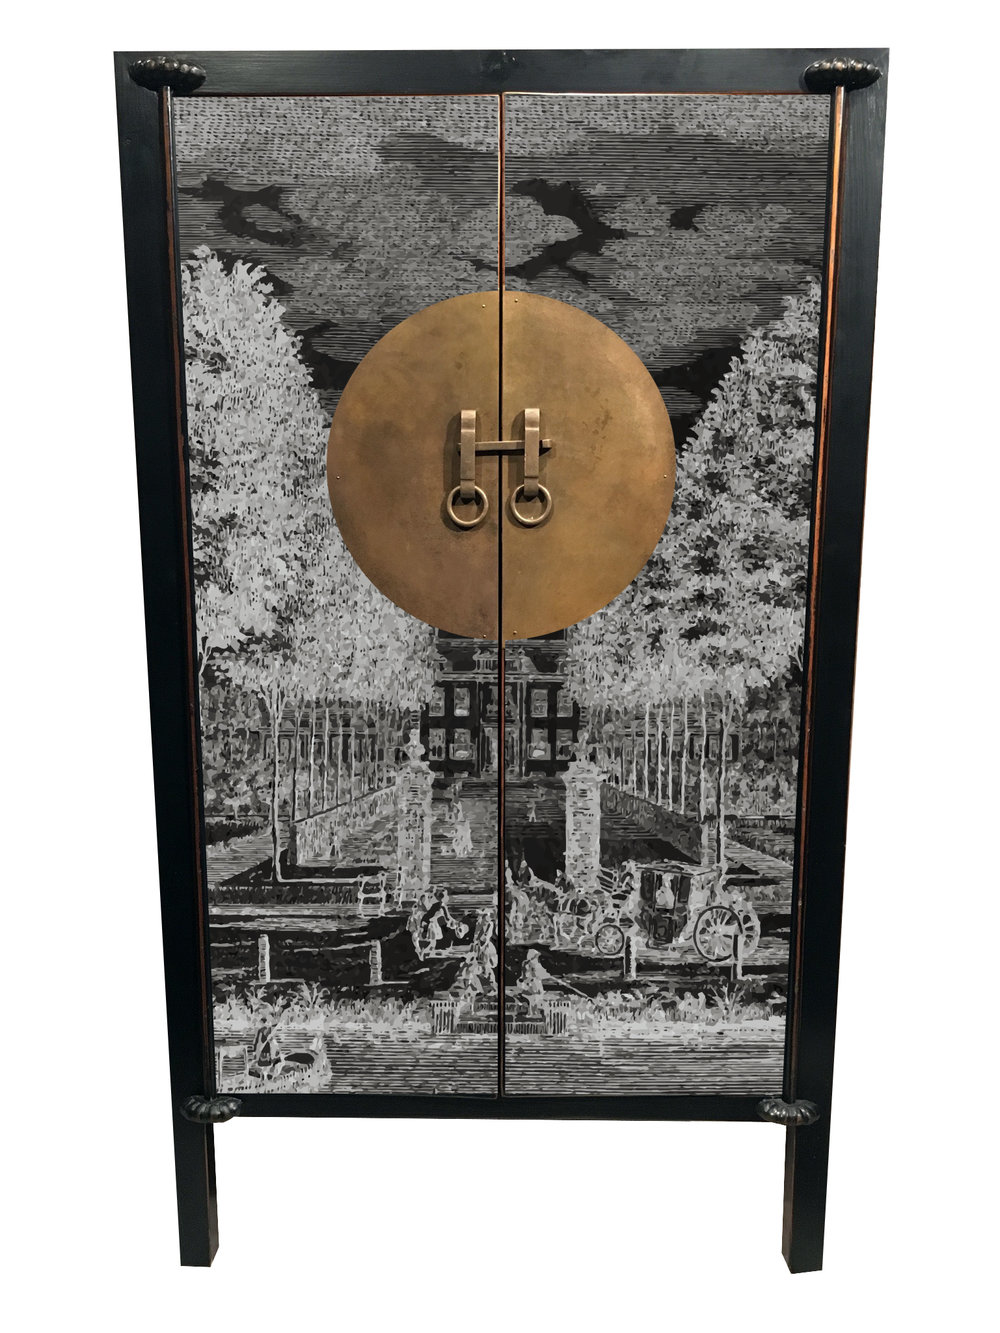 #1. FRENCH GRISAILLE - Cognac and Grand Marnier come to mind when opening up this liquor cabinet.A modern rendition of a Grisaille design on the front door panels. We envision a full gloss Pitch Black or All White inside and out. With Down Pipe Grey lining the inside back wall.